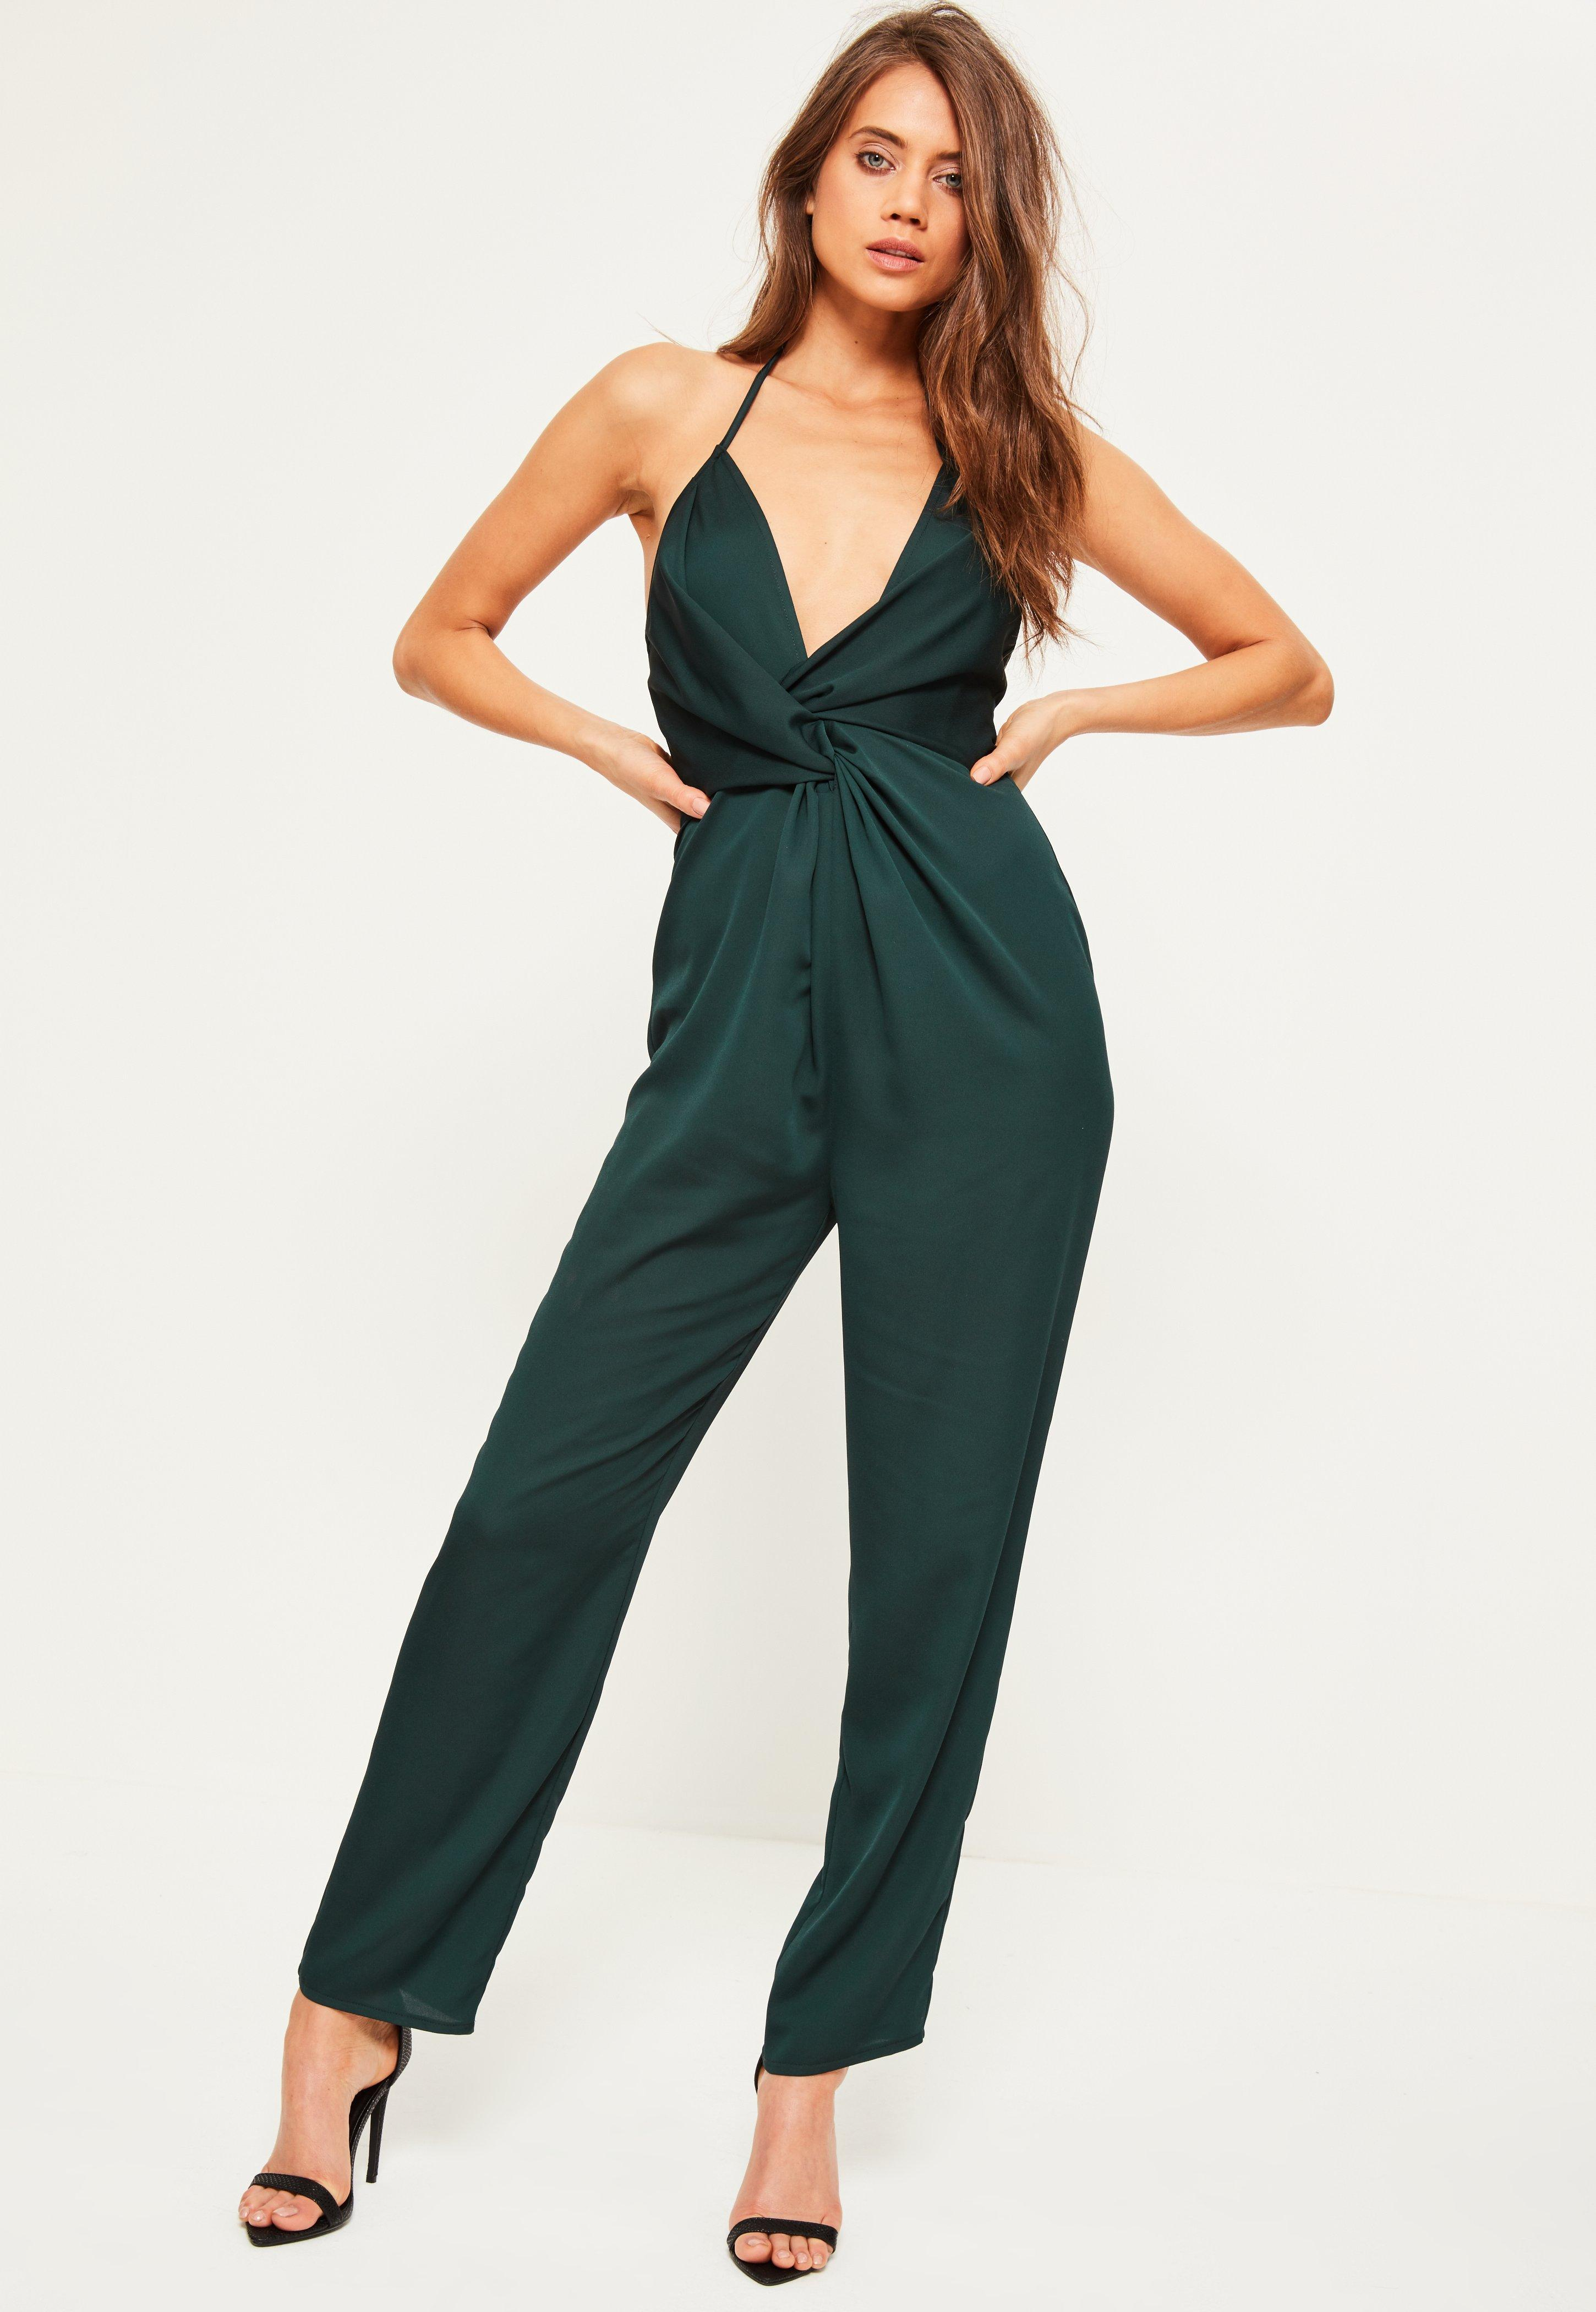 Missguided Green Knot Front Satin Halterneck Jumpsuit in Green | Lyst